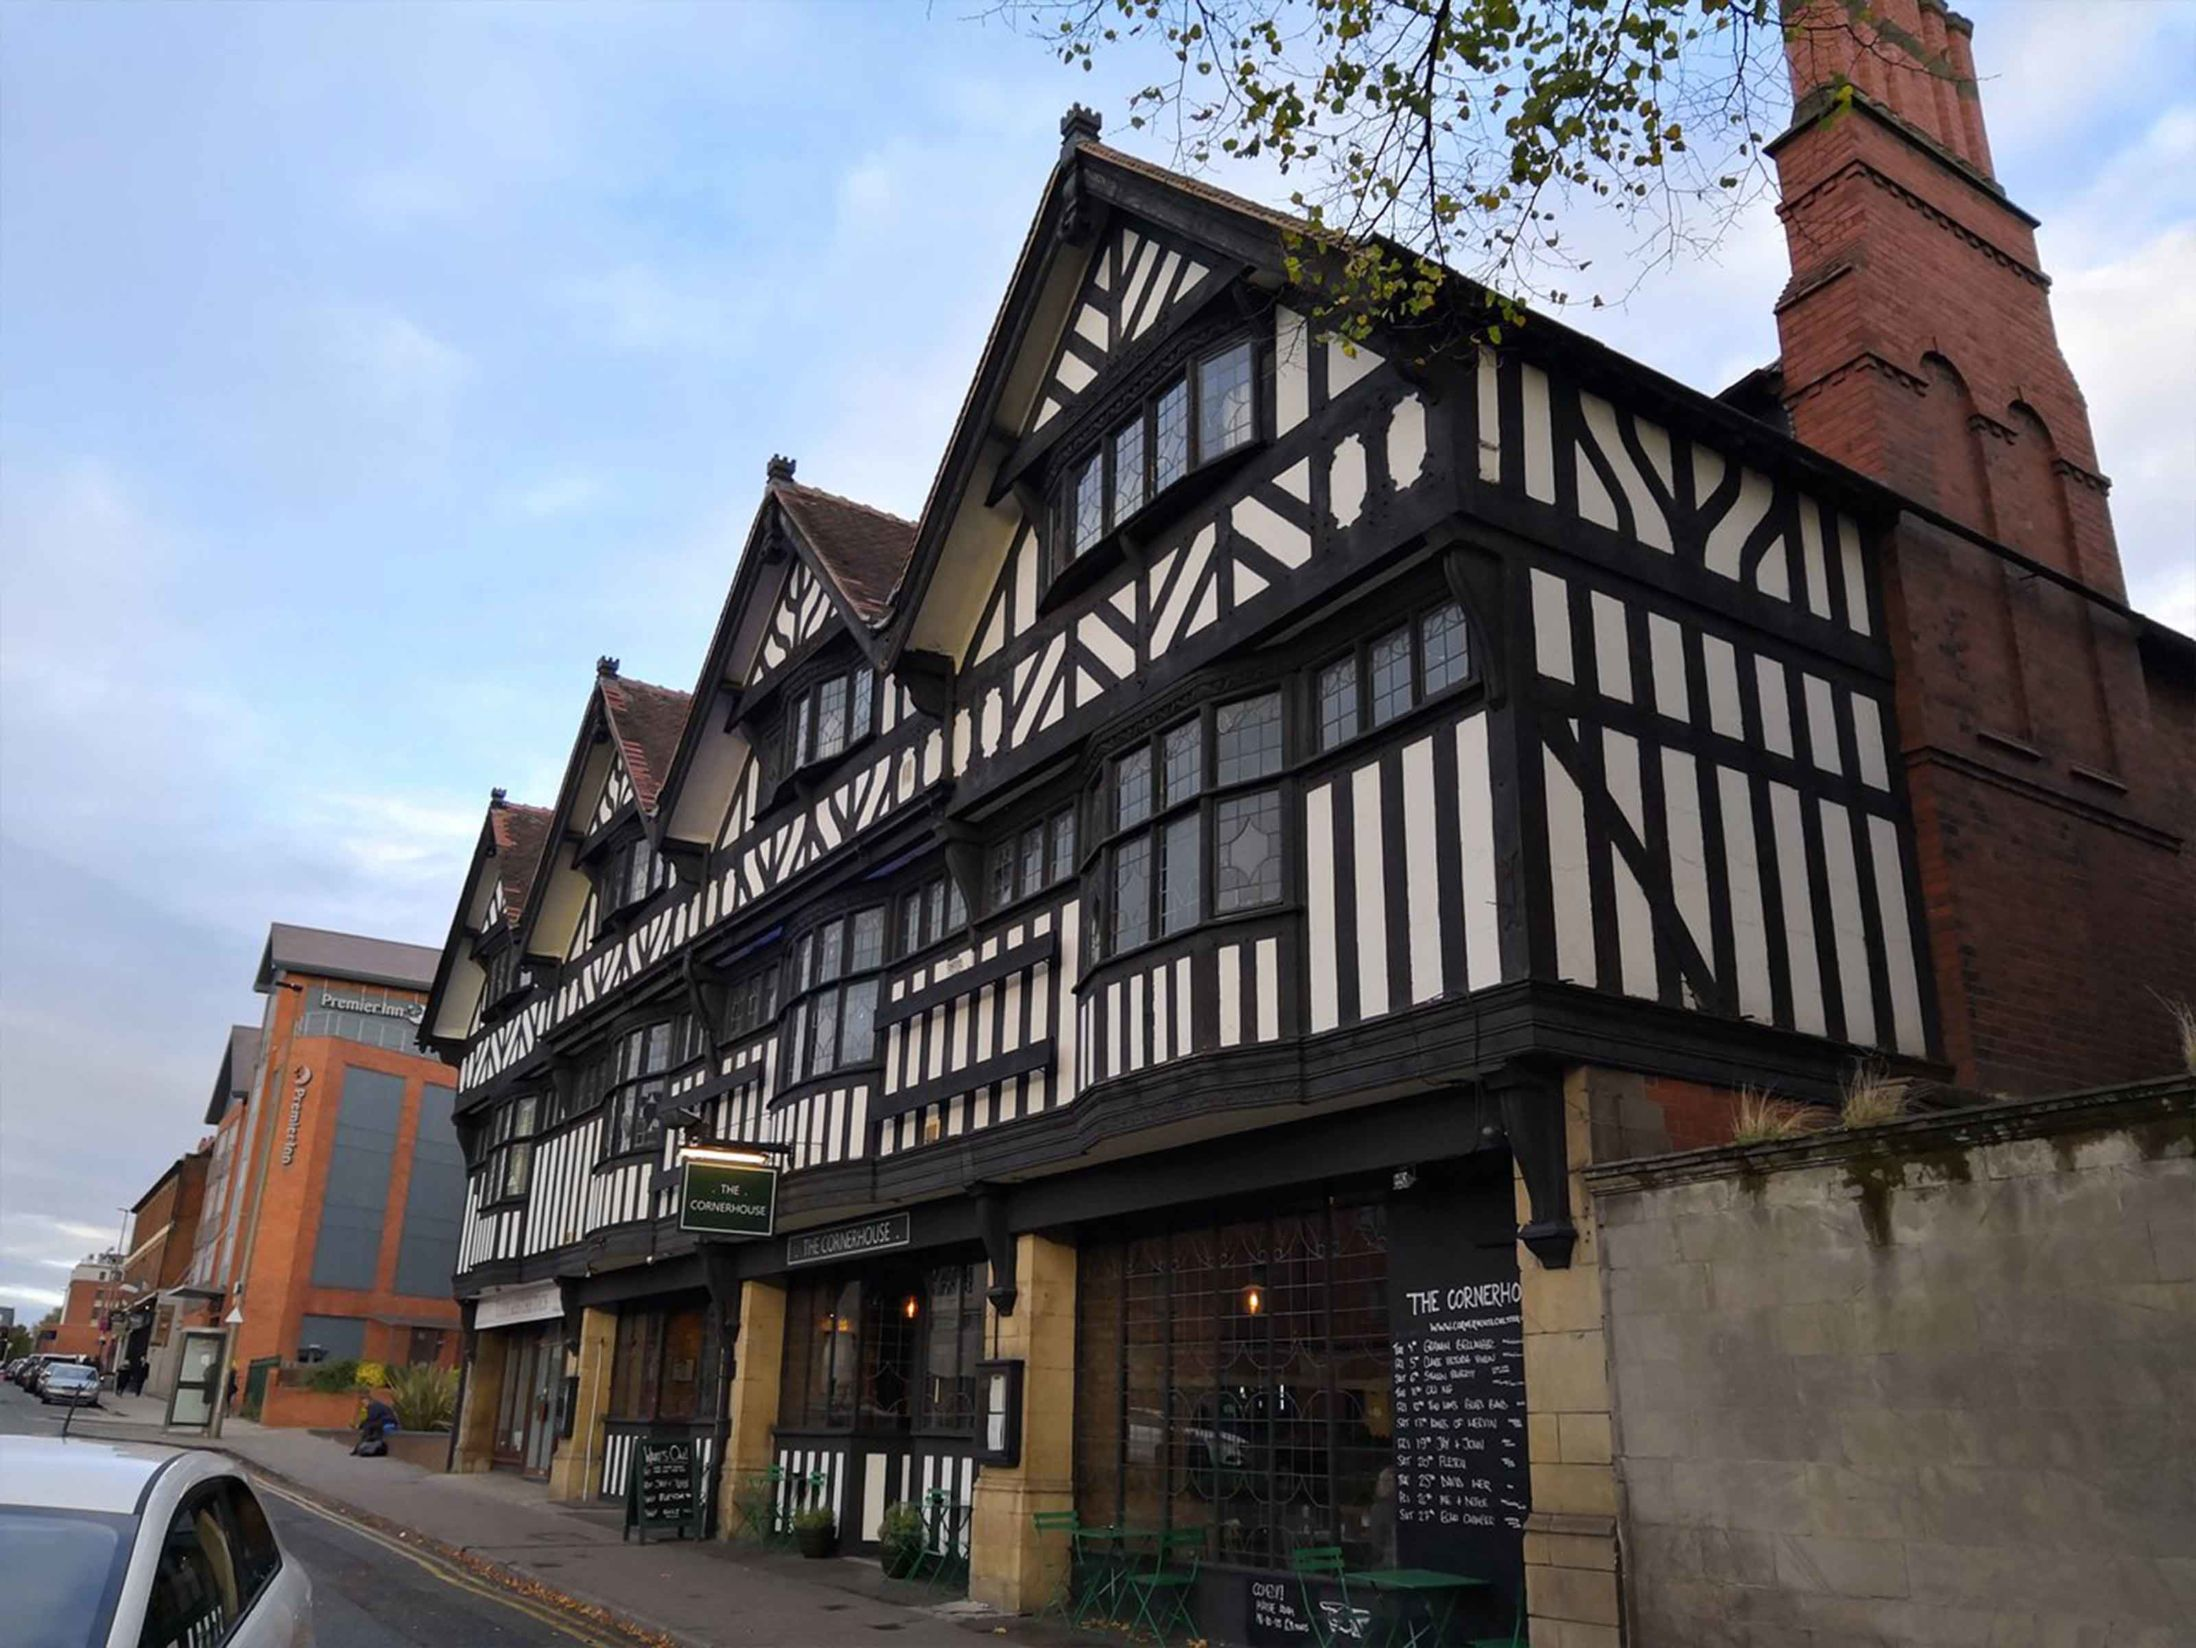 The Cornerhouse - Real Ale Pubs in Chester